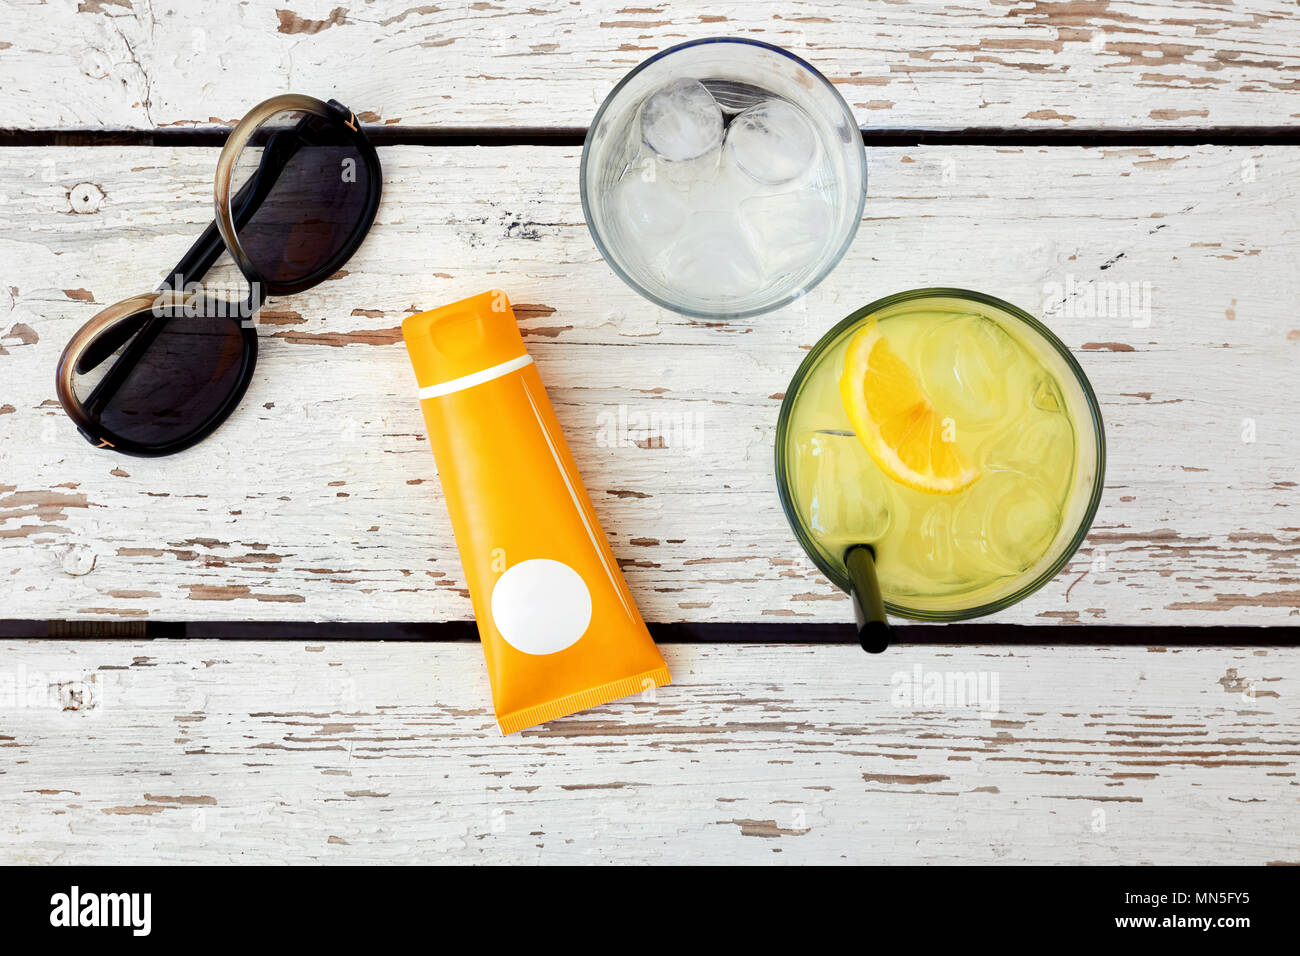 Top view of sunglasses, sunblock, glass of lemonade and water on a white wooden table. Concept of beach accessories and holiday - Stock Image